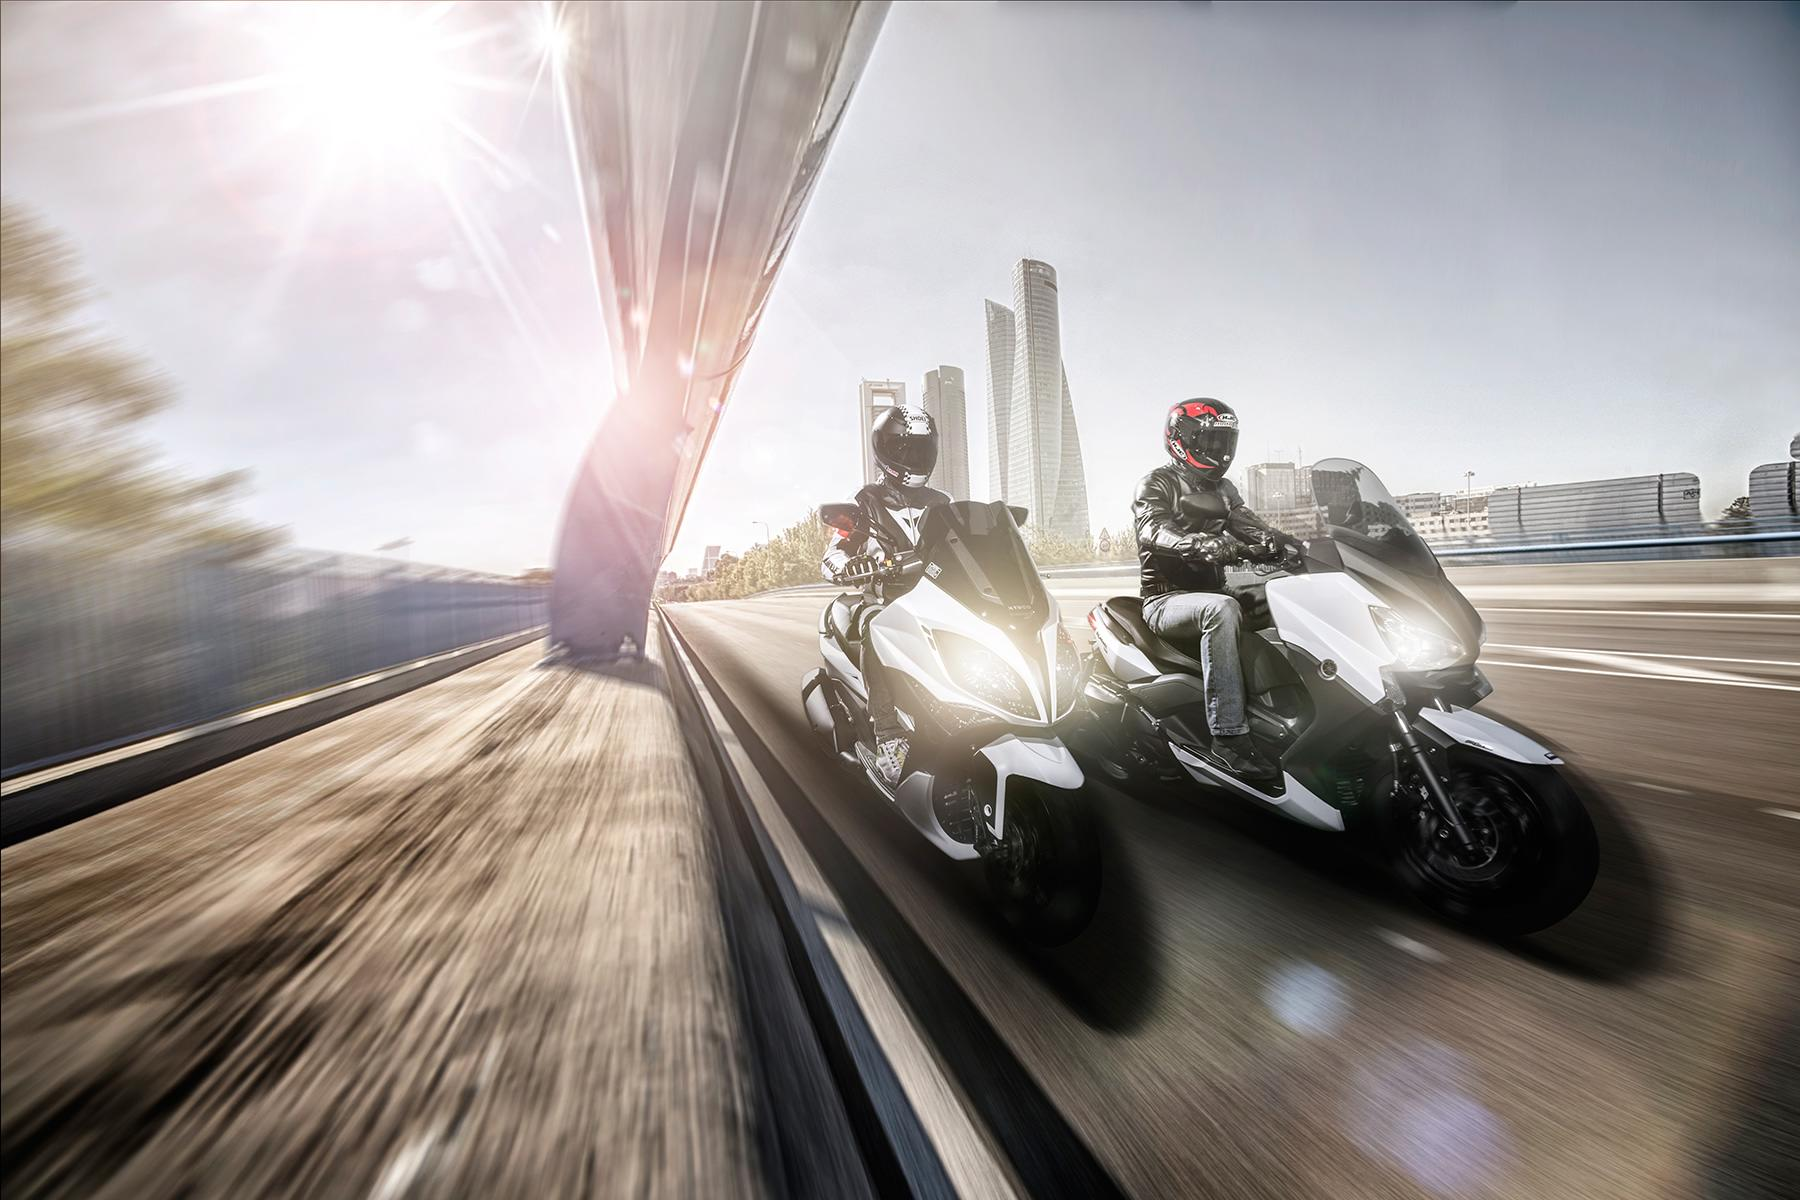 Yamaha X-Max 400 vs Kymco Xciting 400